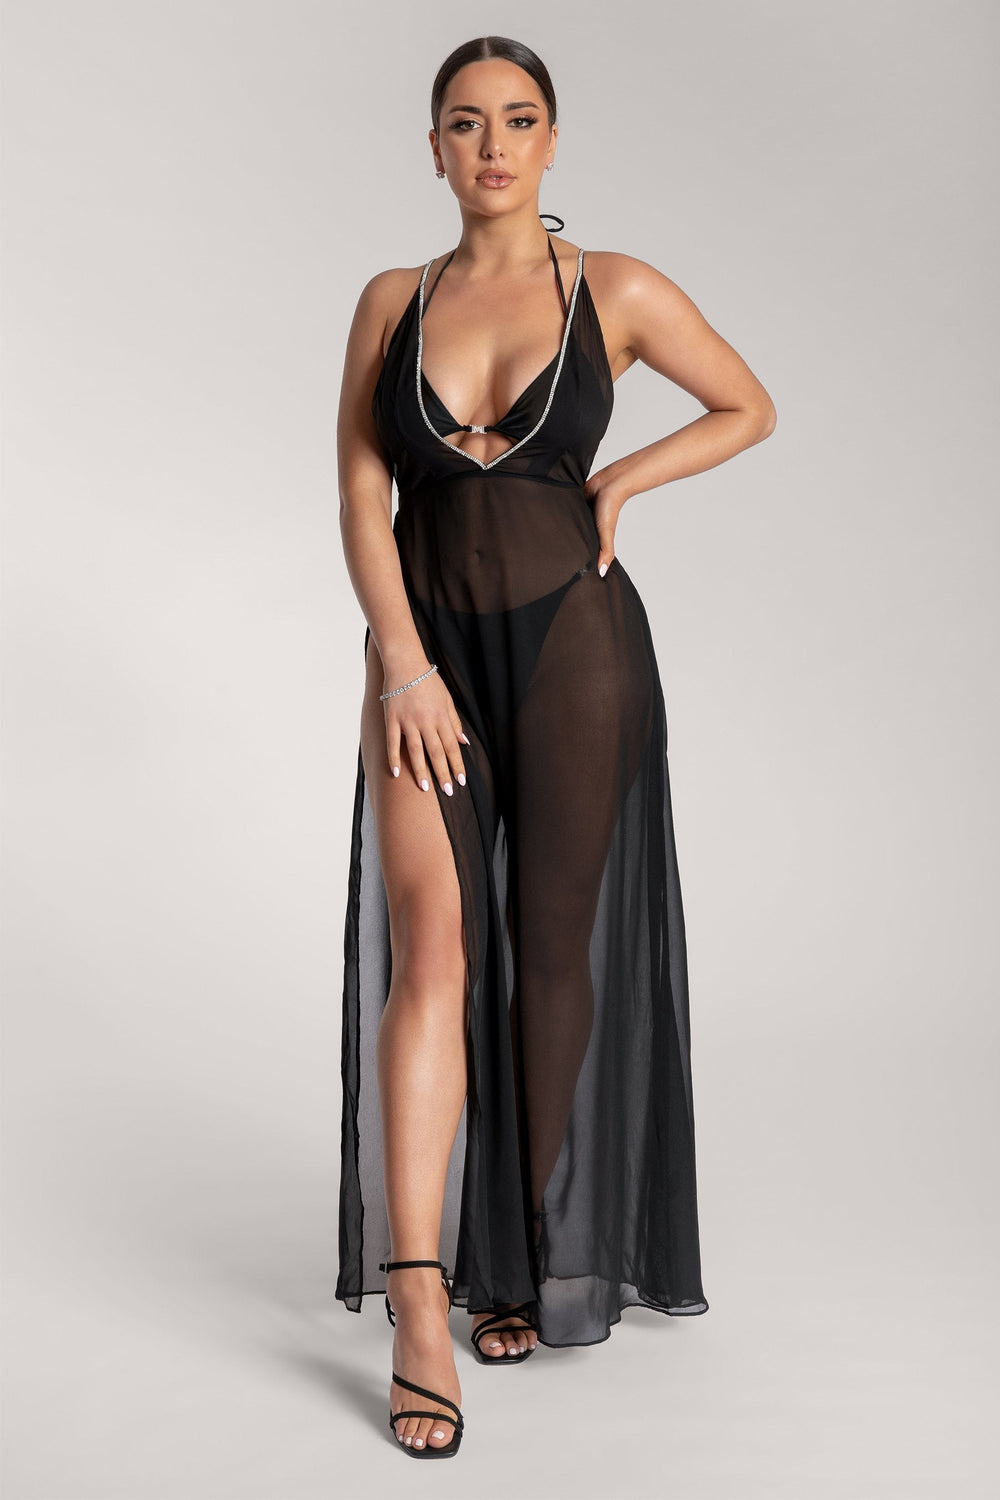 Katelin V-Neck Diamante Sheer Maxi Dress - Black - MESHKI ?id=15774831050827